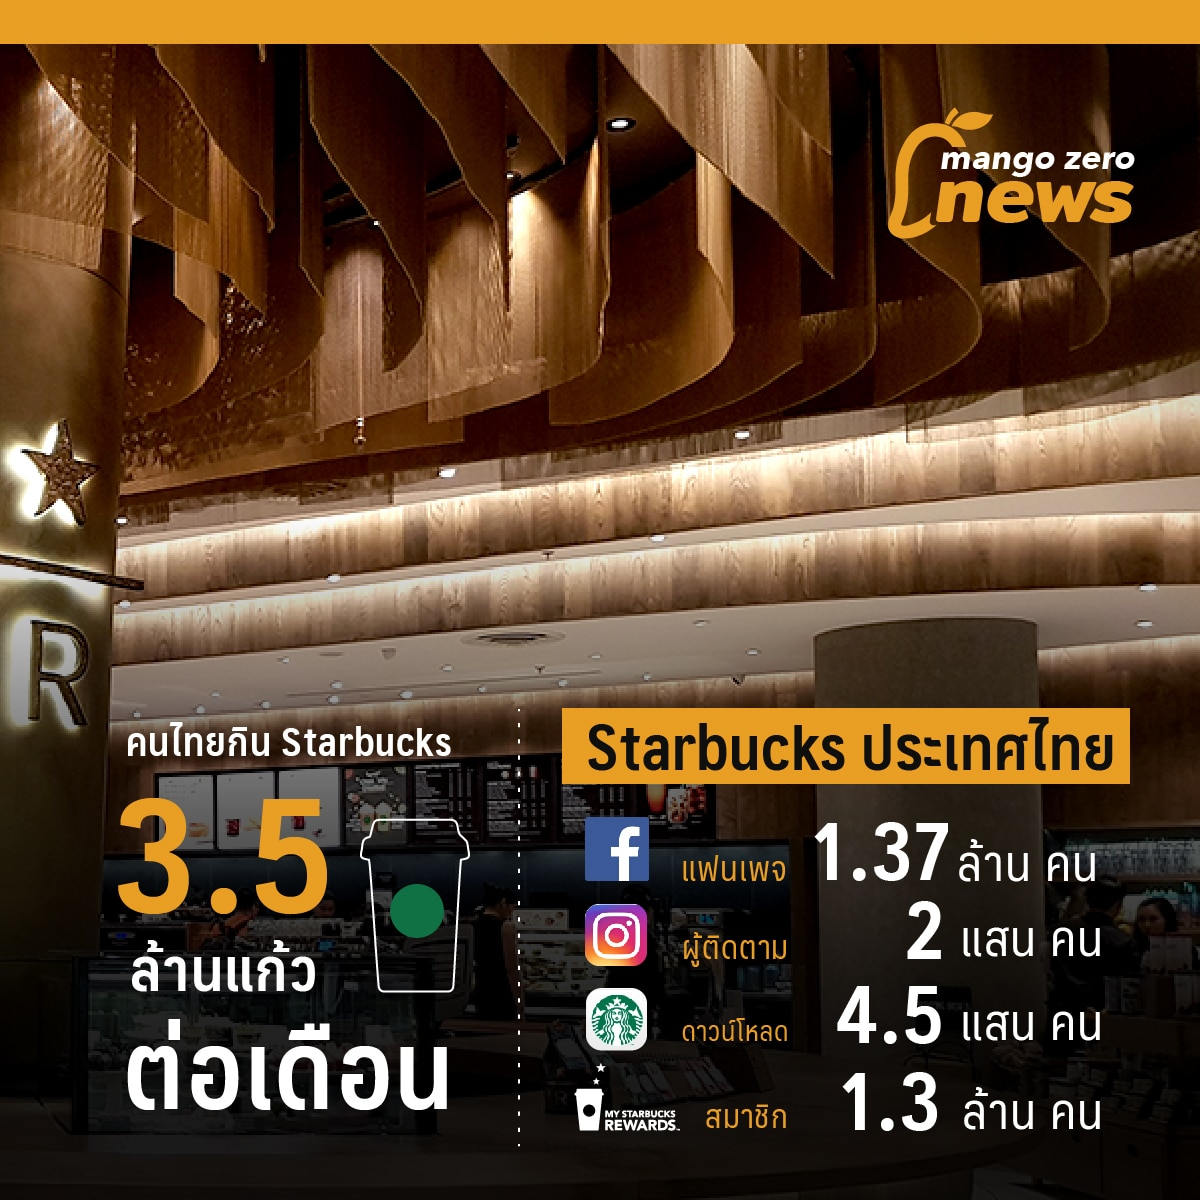 starbucks-20th-anniver-thailand-03